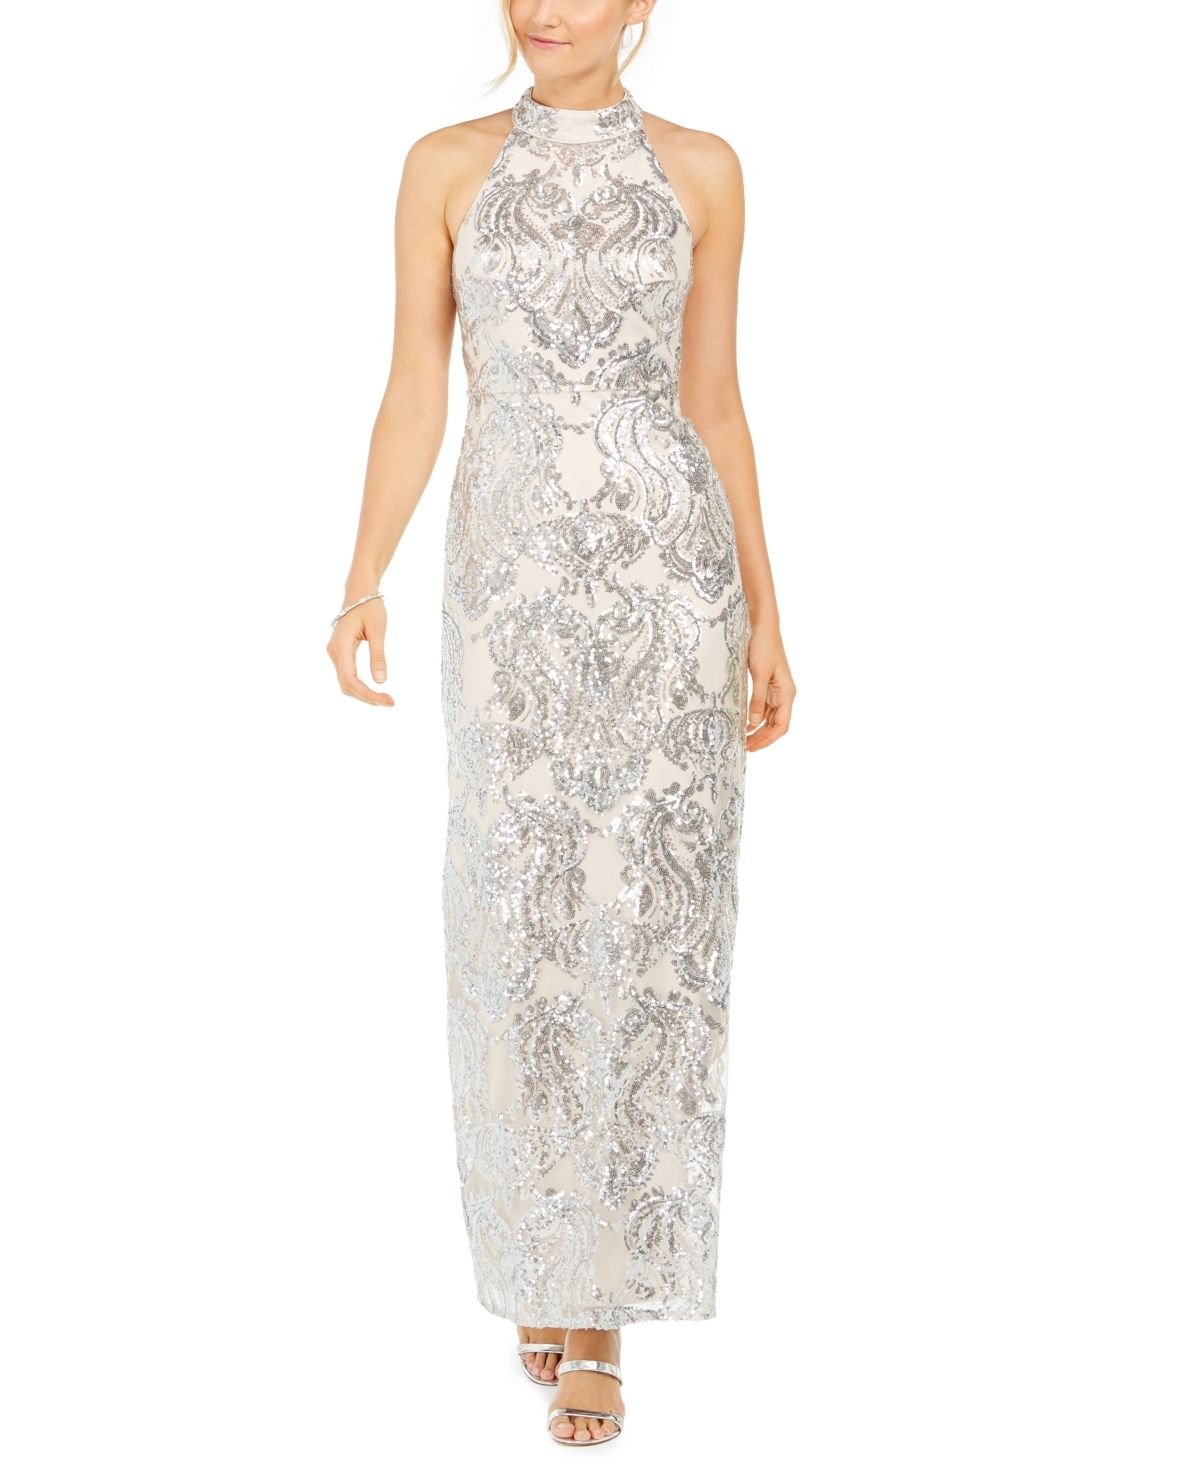 Vince Camuto Sequined Halter Gown Reviews Dresses Women Macy S In 2020 Floral Print Gowns Halter Gown Review Dresses [ 1466 x 1200 Pixel ]